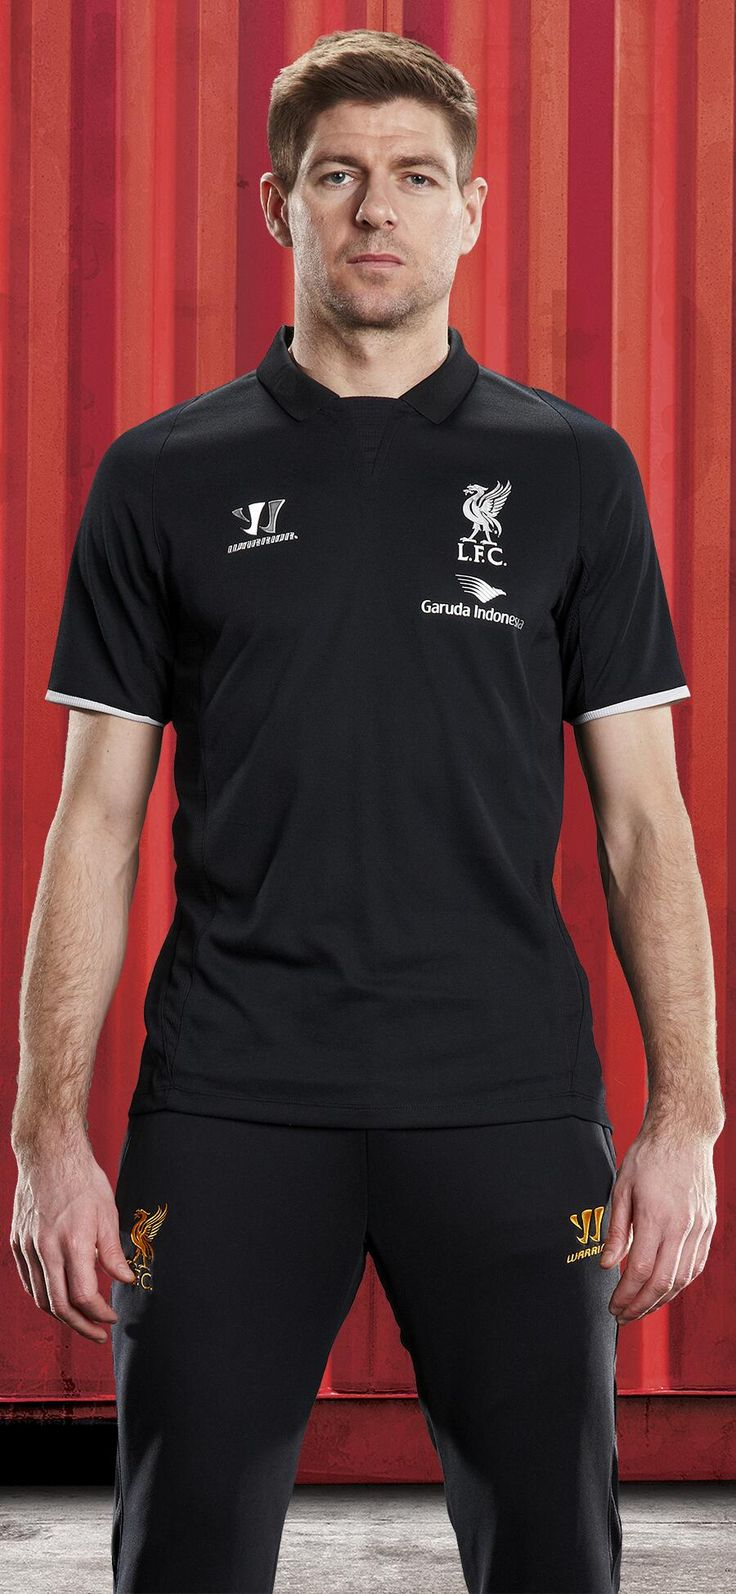 Design your own t shirt liverpool - Liverpool Fc On